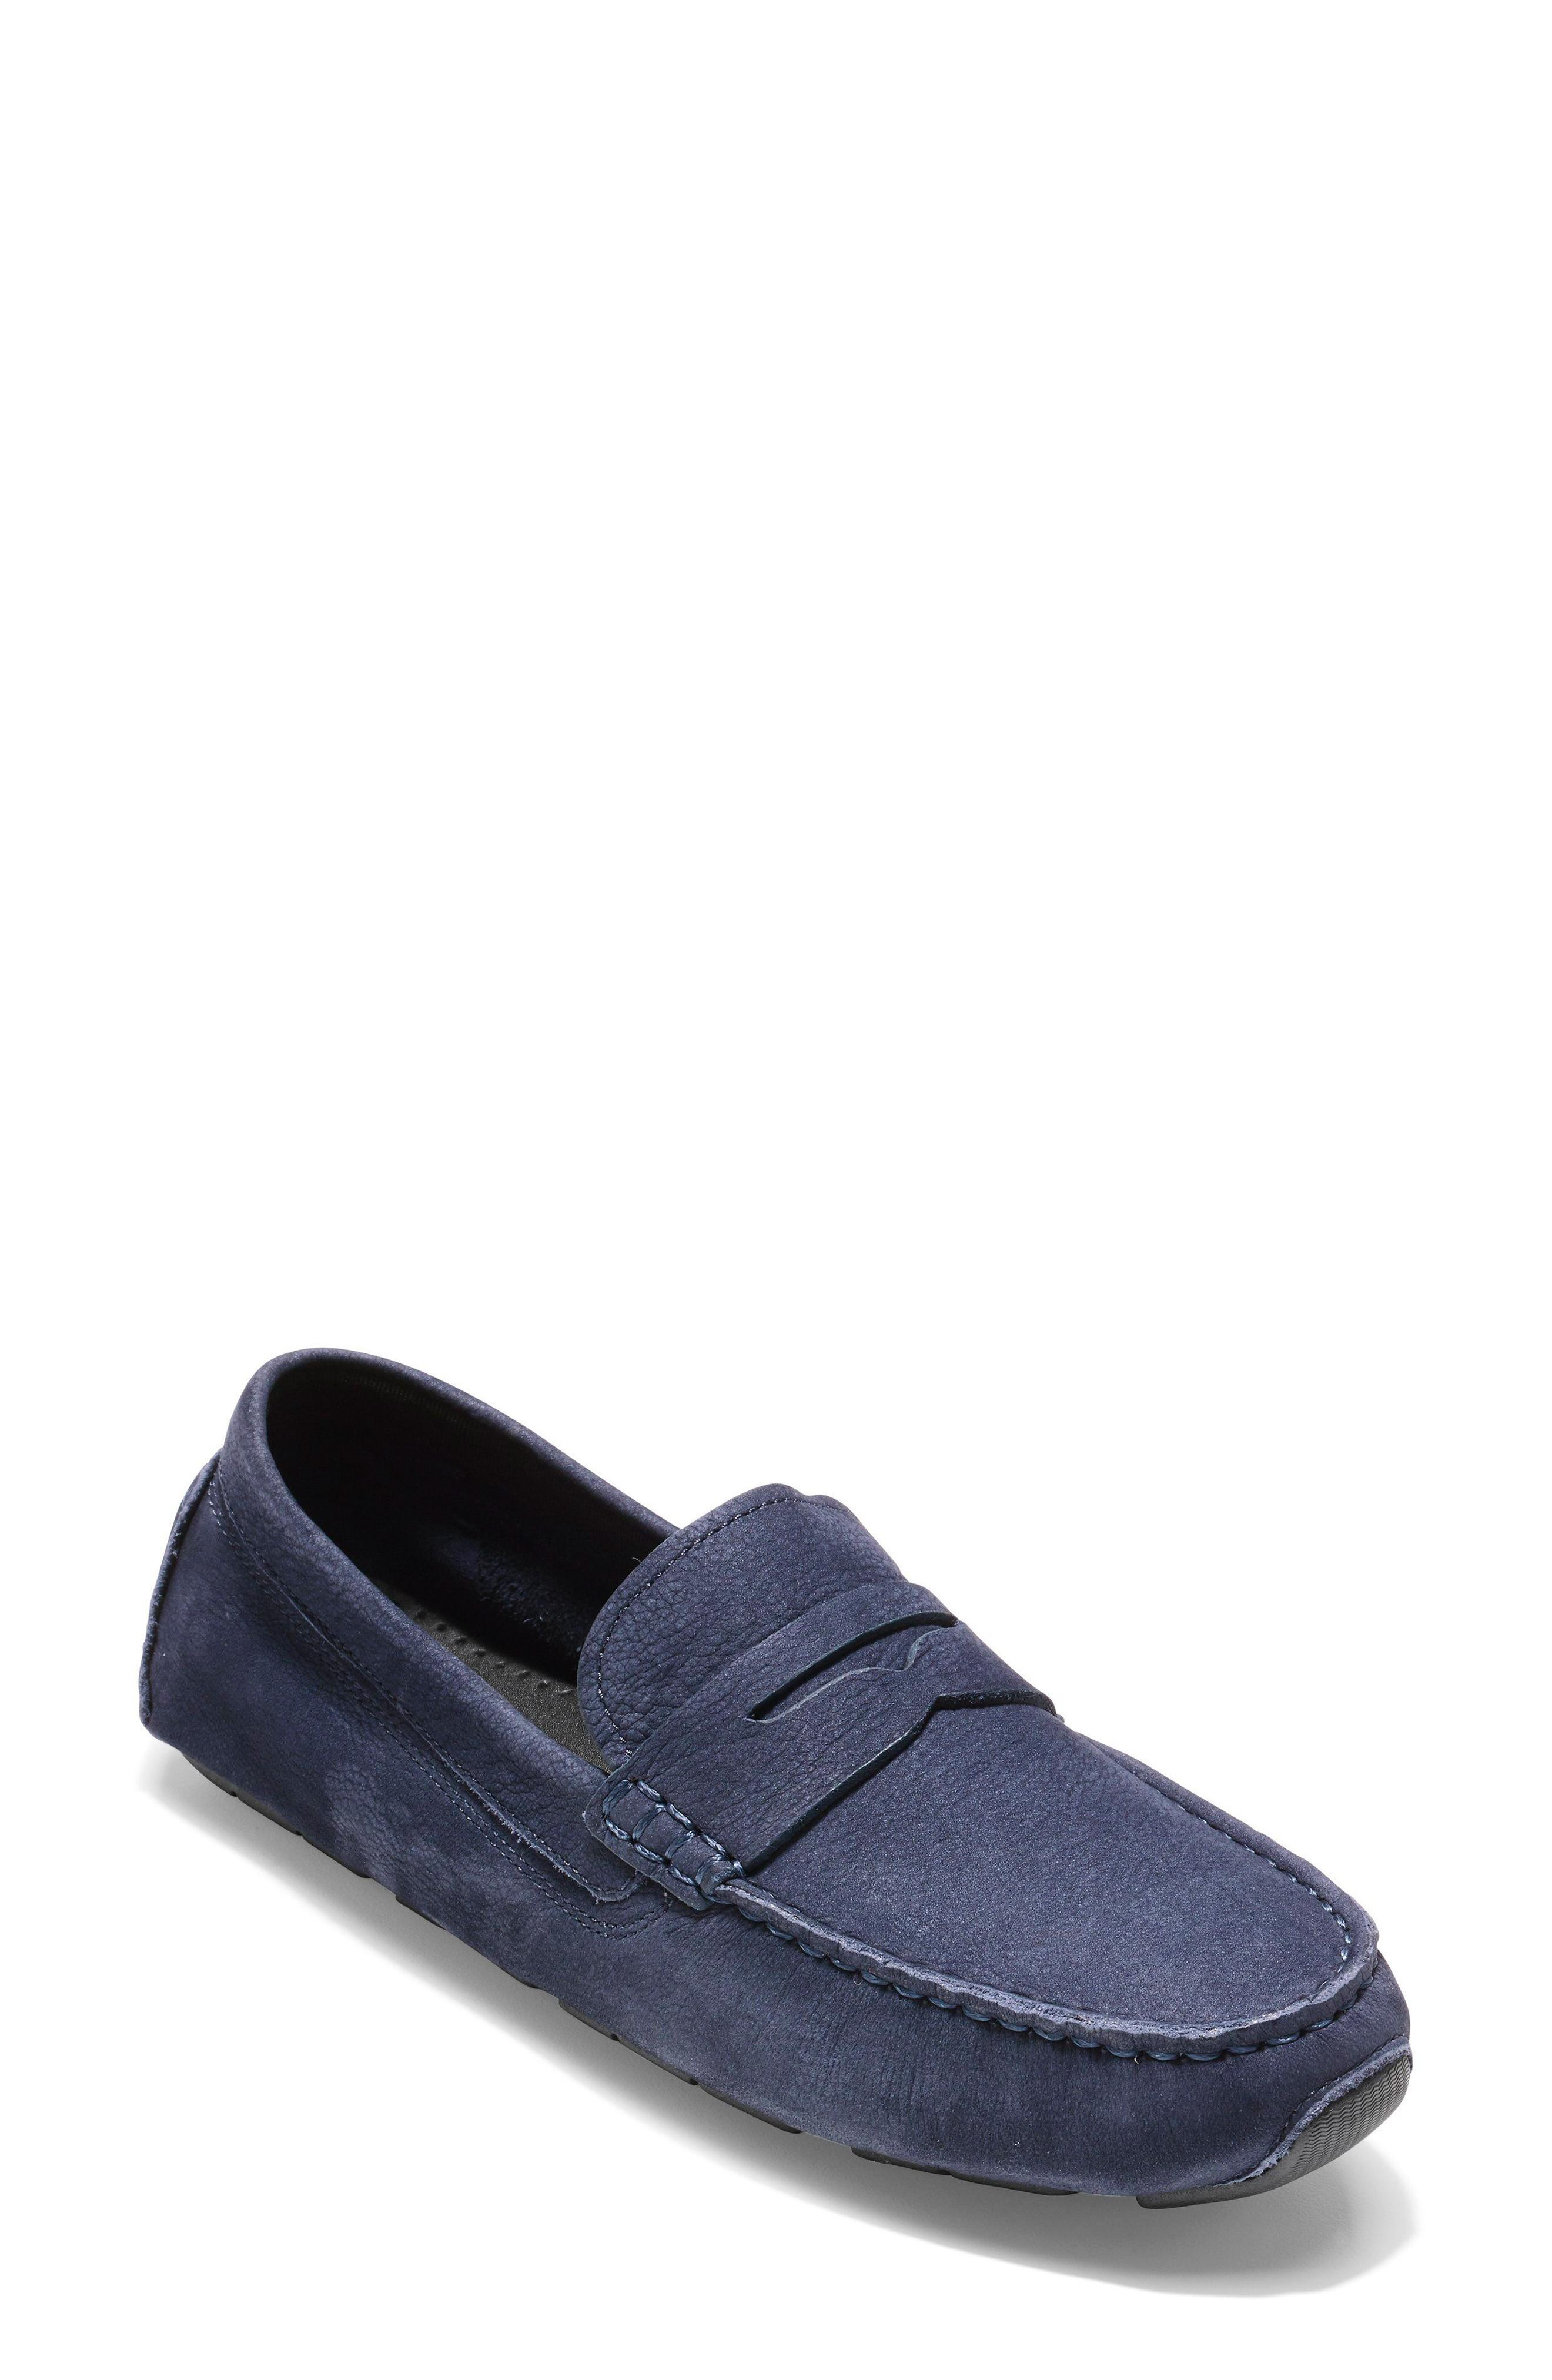 Cole Haan Rodeo Penny Driving Loafer In Marine Blue Nubuck